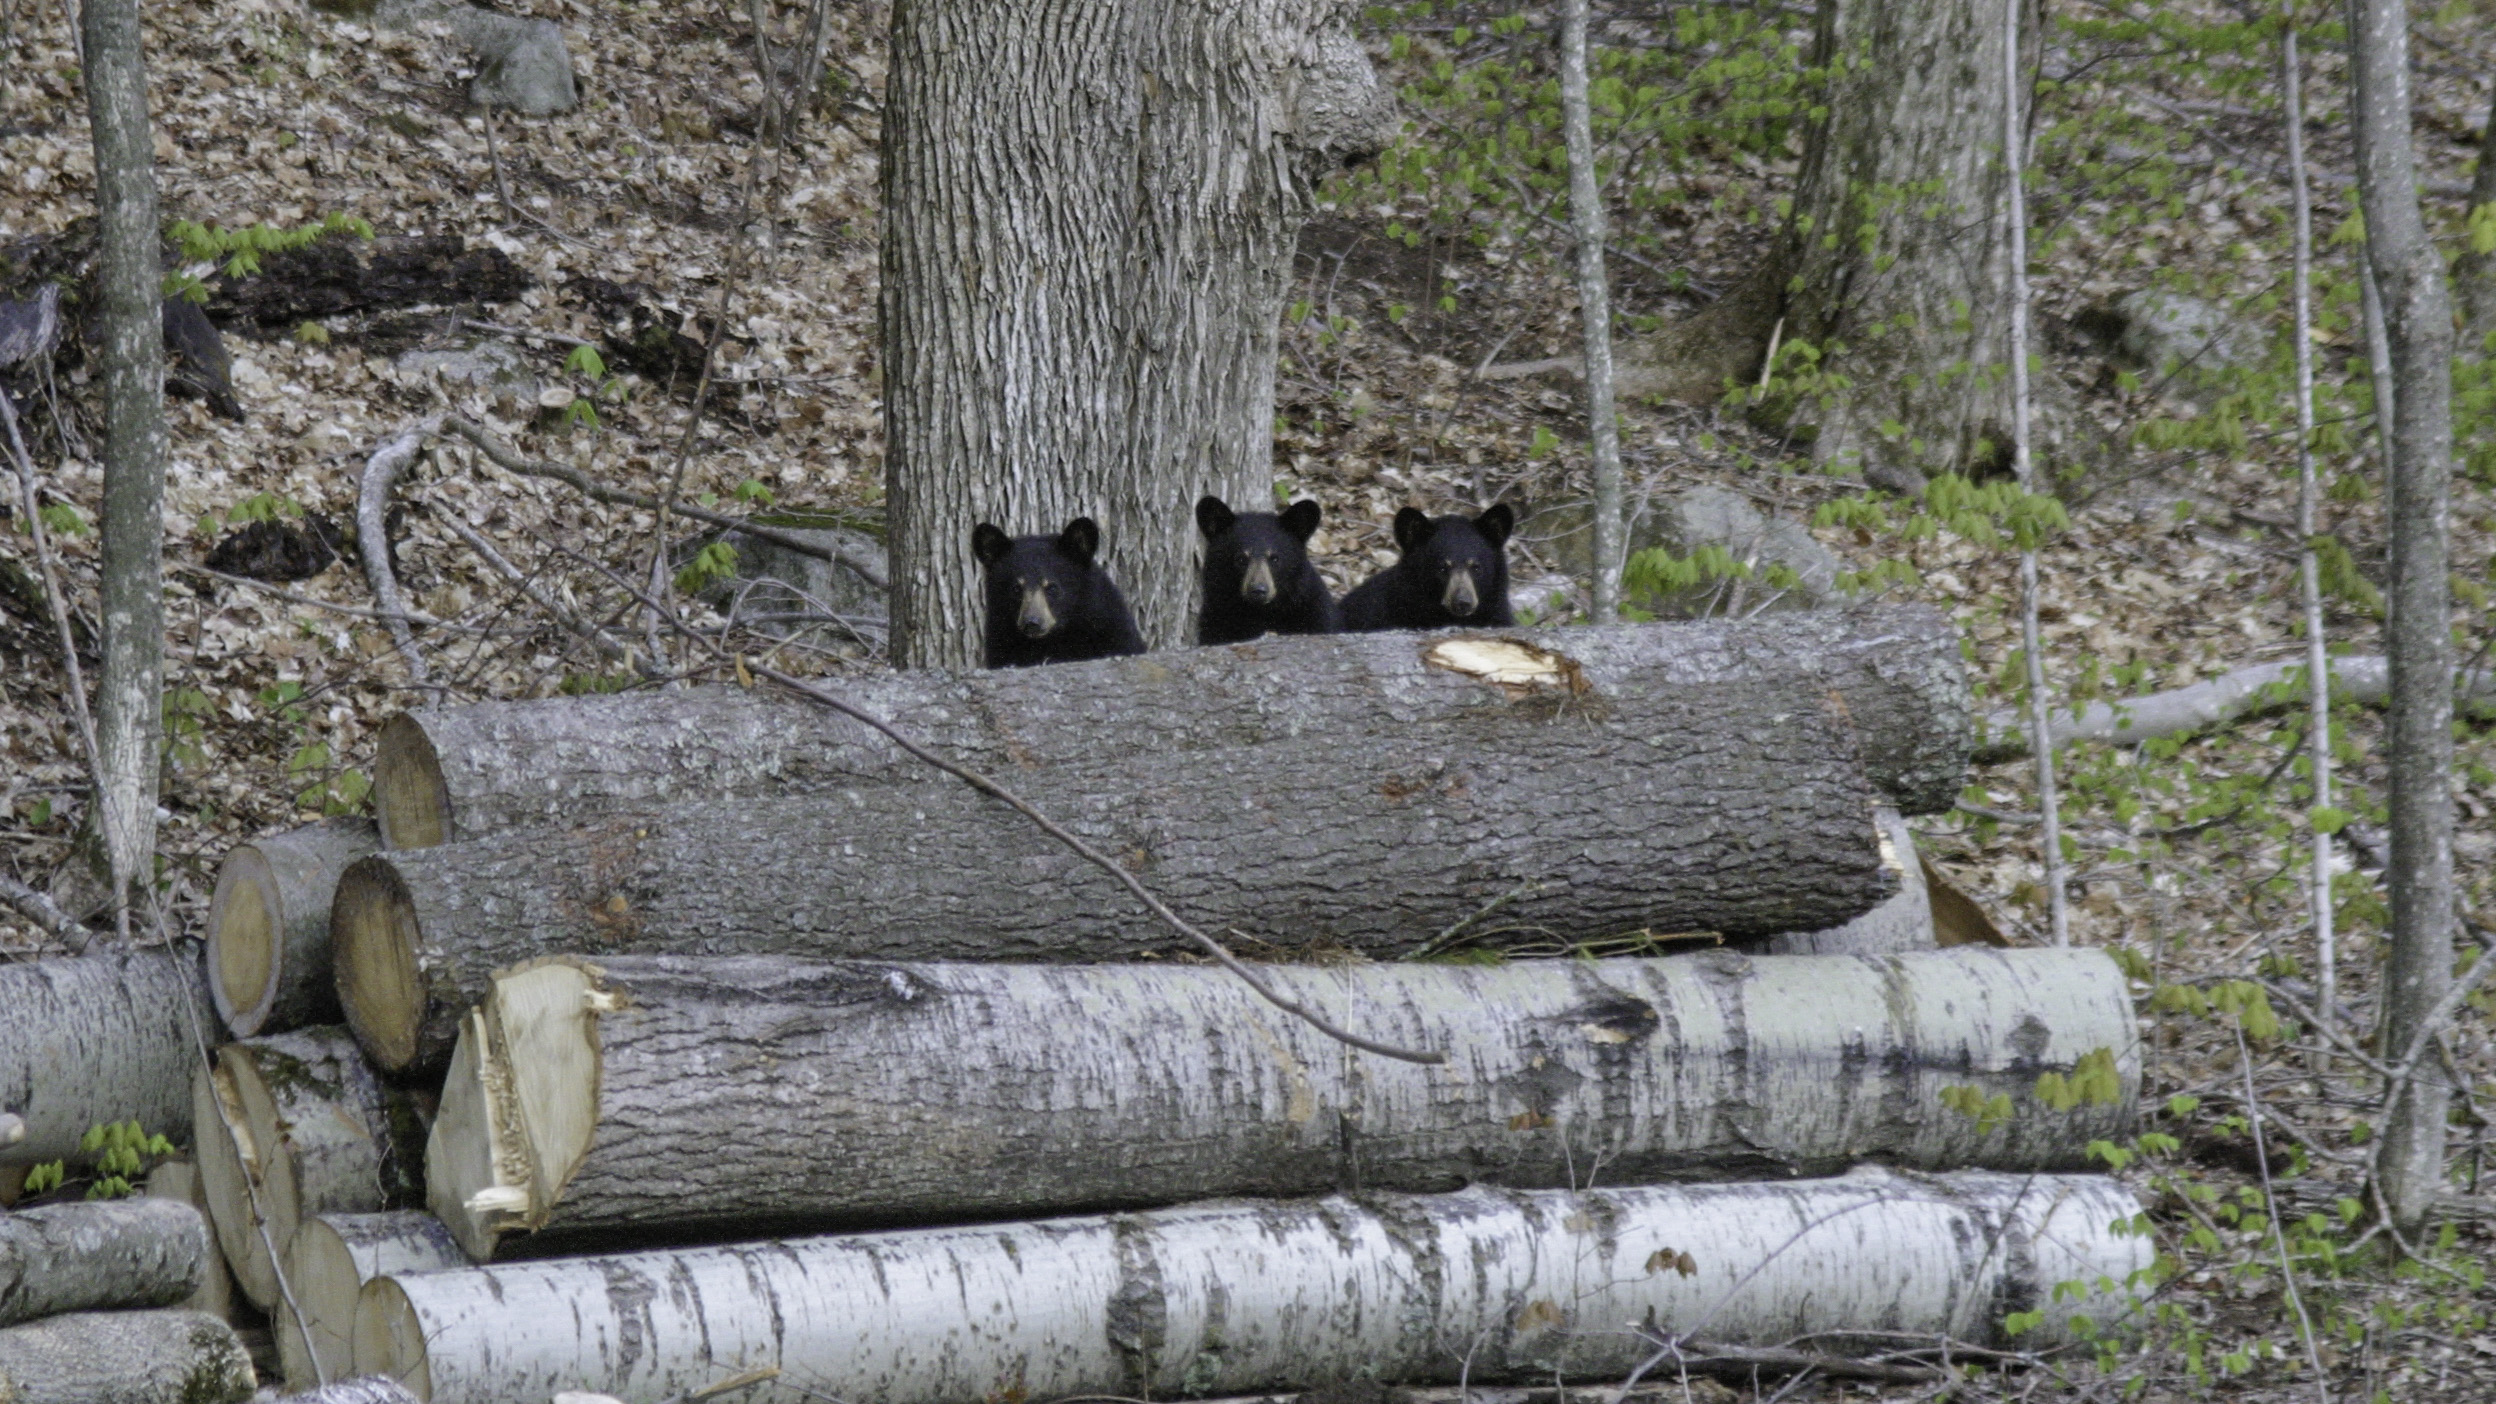 Caption: Black Bears in New Hampshire, Credit: Kilham Bear Center